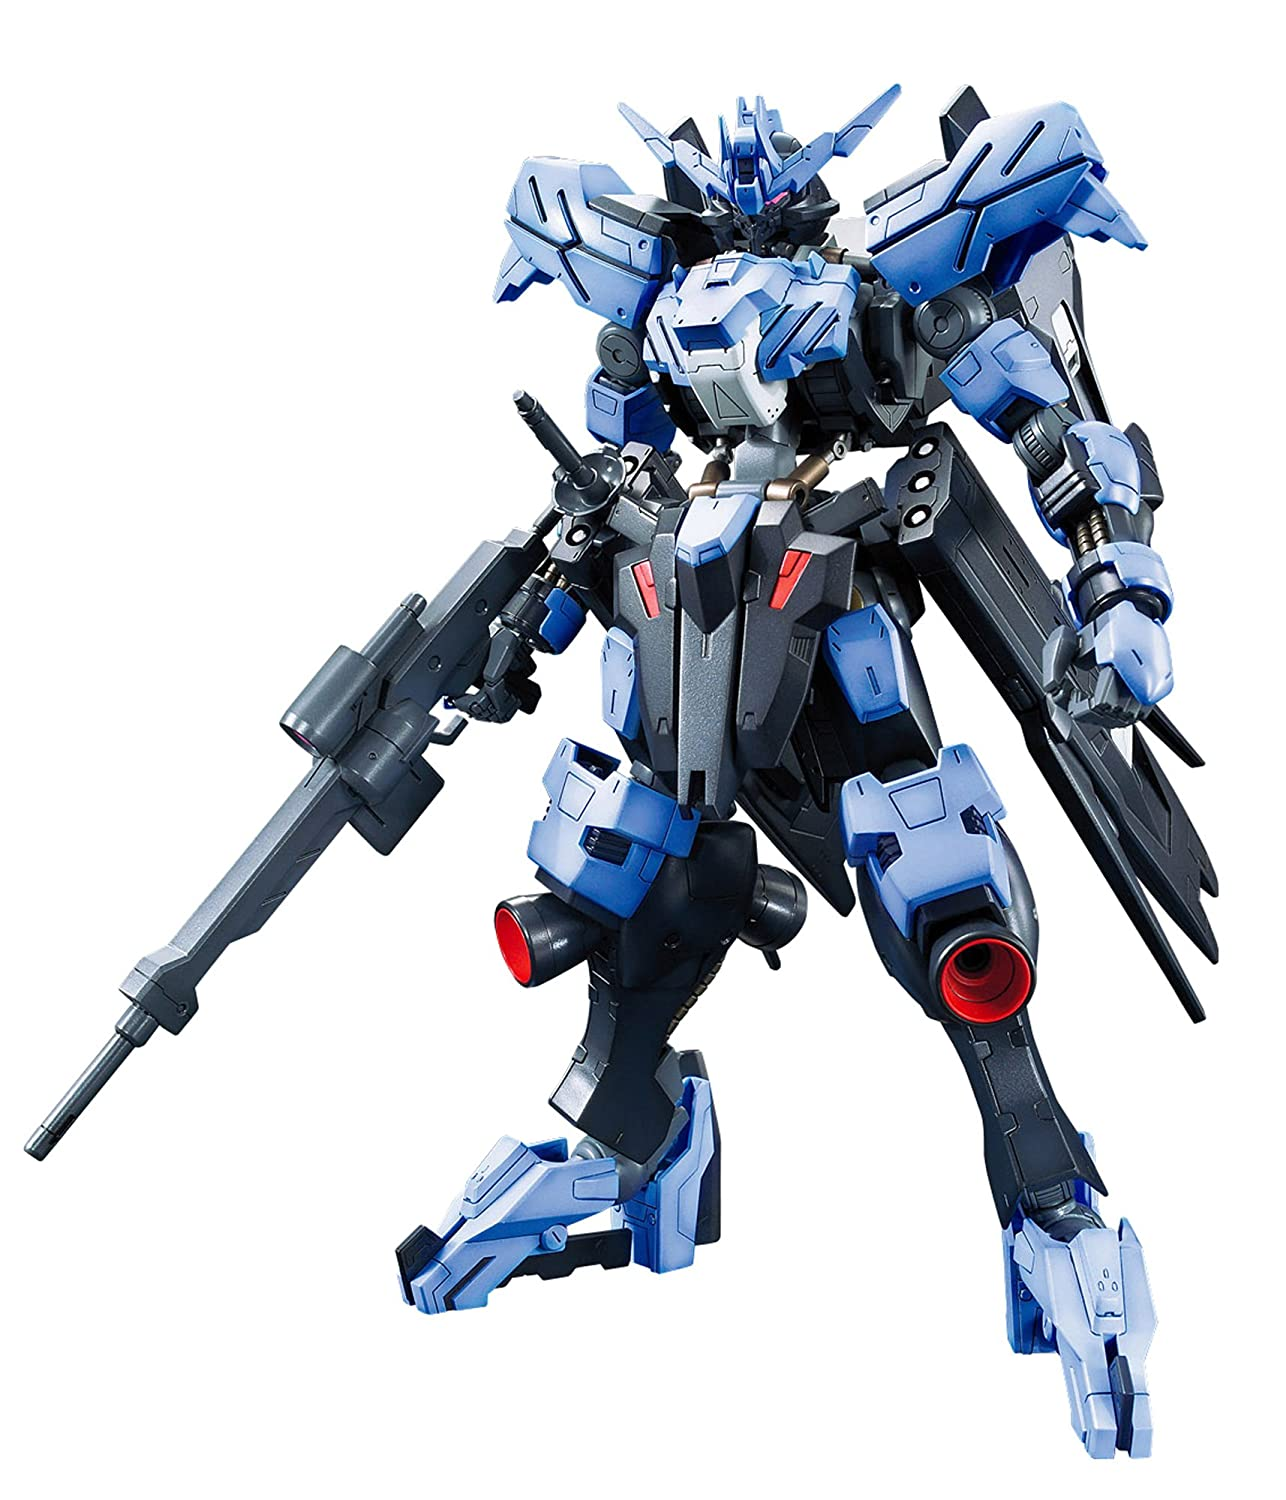 "Bandai Hobby Hg Full Mechanics Gundam Vidar ""Ibo: 2nd Season"" Building Kit (1/100 Scale) by Bandai Hobby"